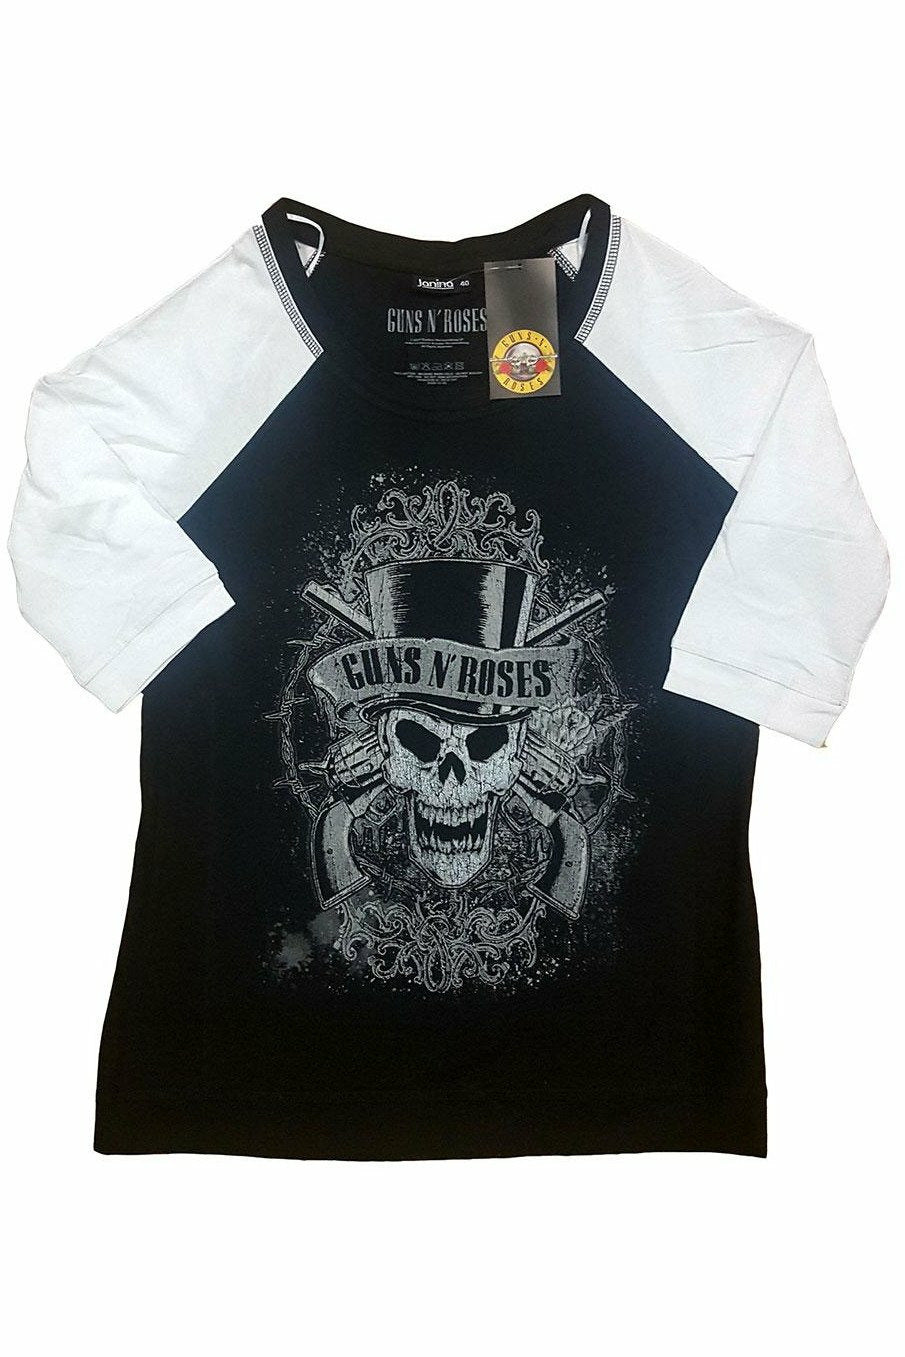 Guns N' Roses : Faded Skull Raglan